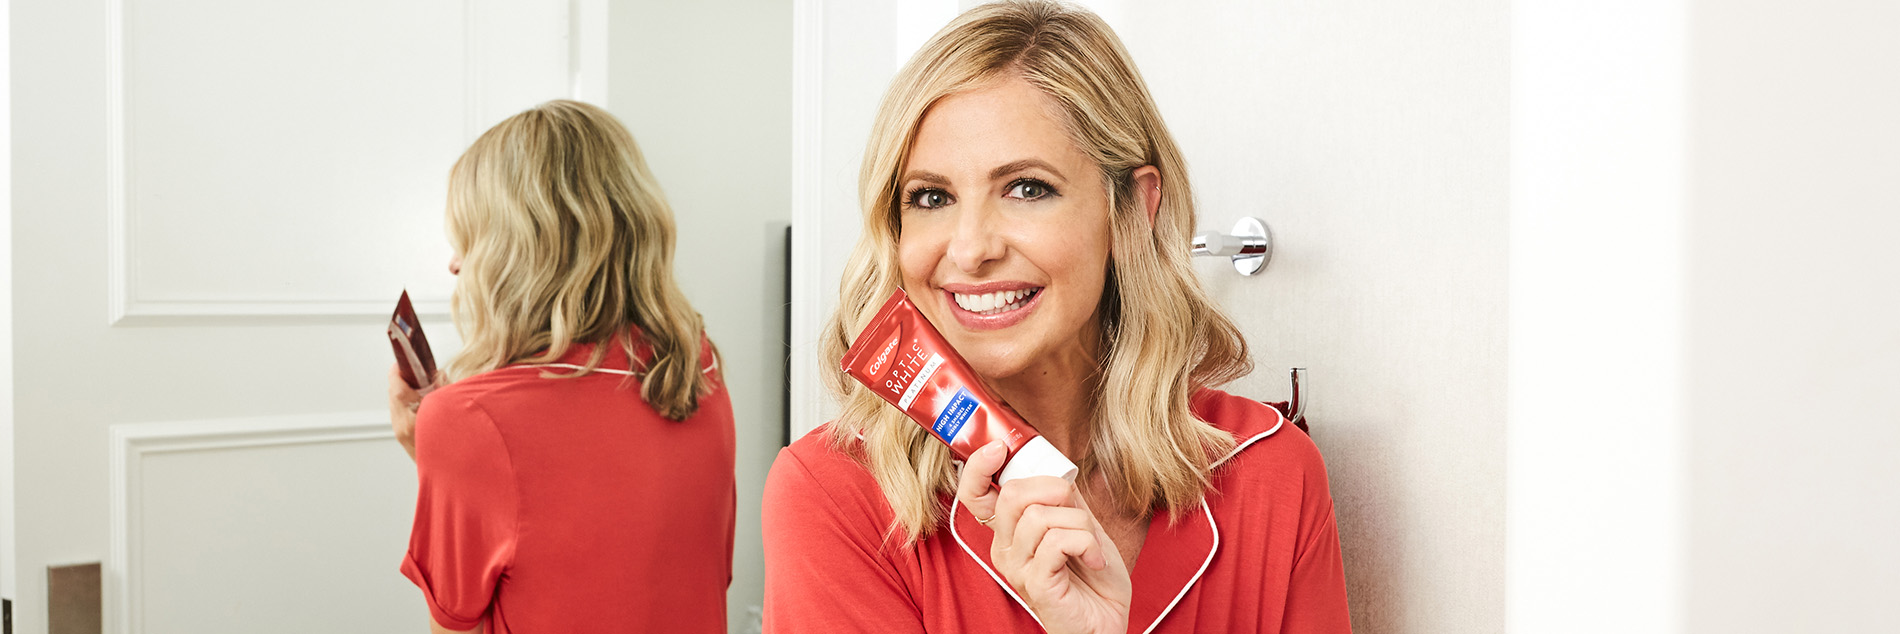 Actress Sarah Michelle Gellar reveals that the key to her iconic bright, white smile is Colgate® Optic White® Platinum™ High Impact™ Toothpaste.